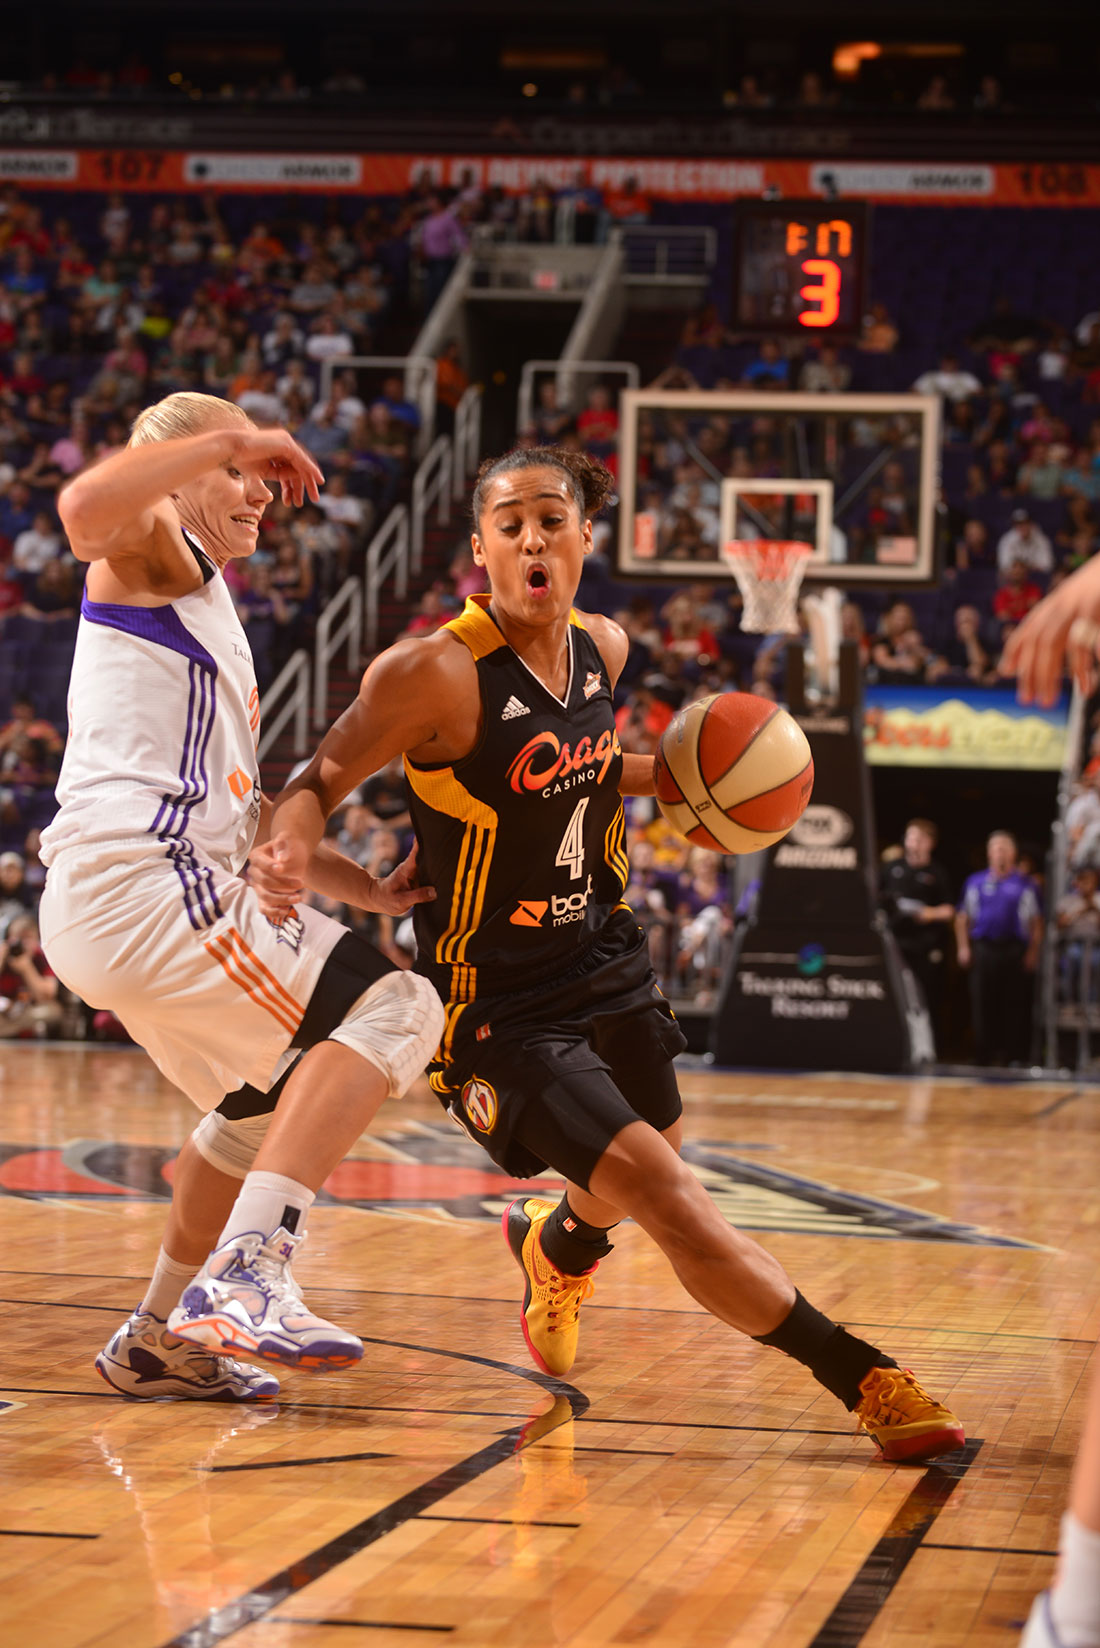 Skylar Diggins Copyright 2014 NBAE (Photo by Shane Bevel/NBAE via Getty Images